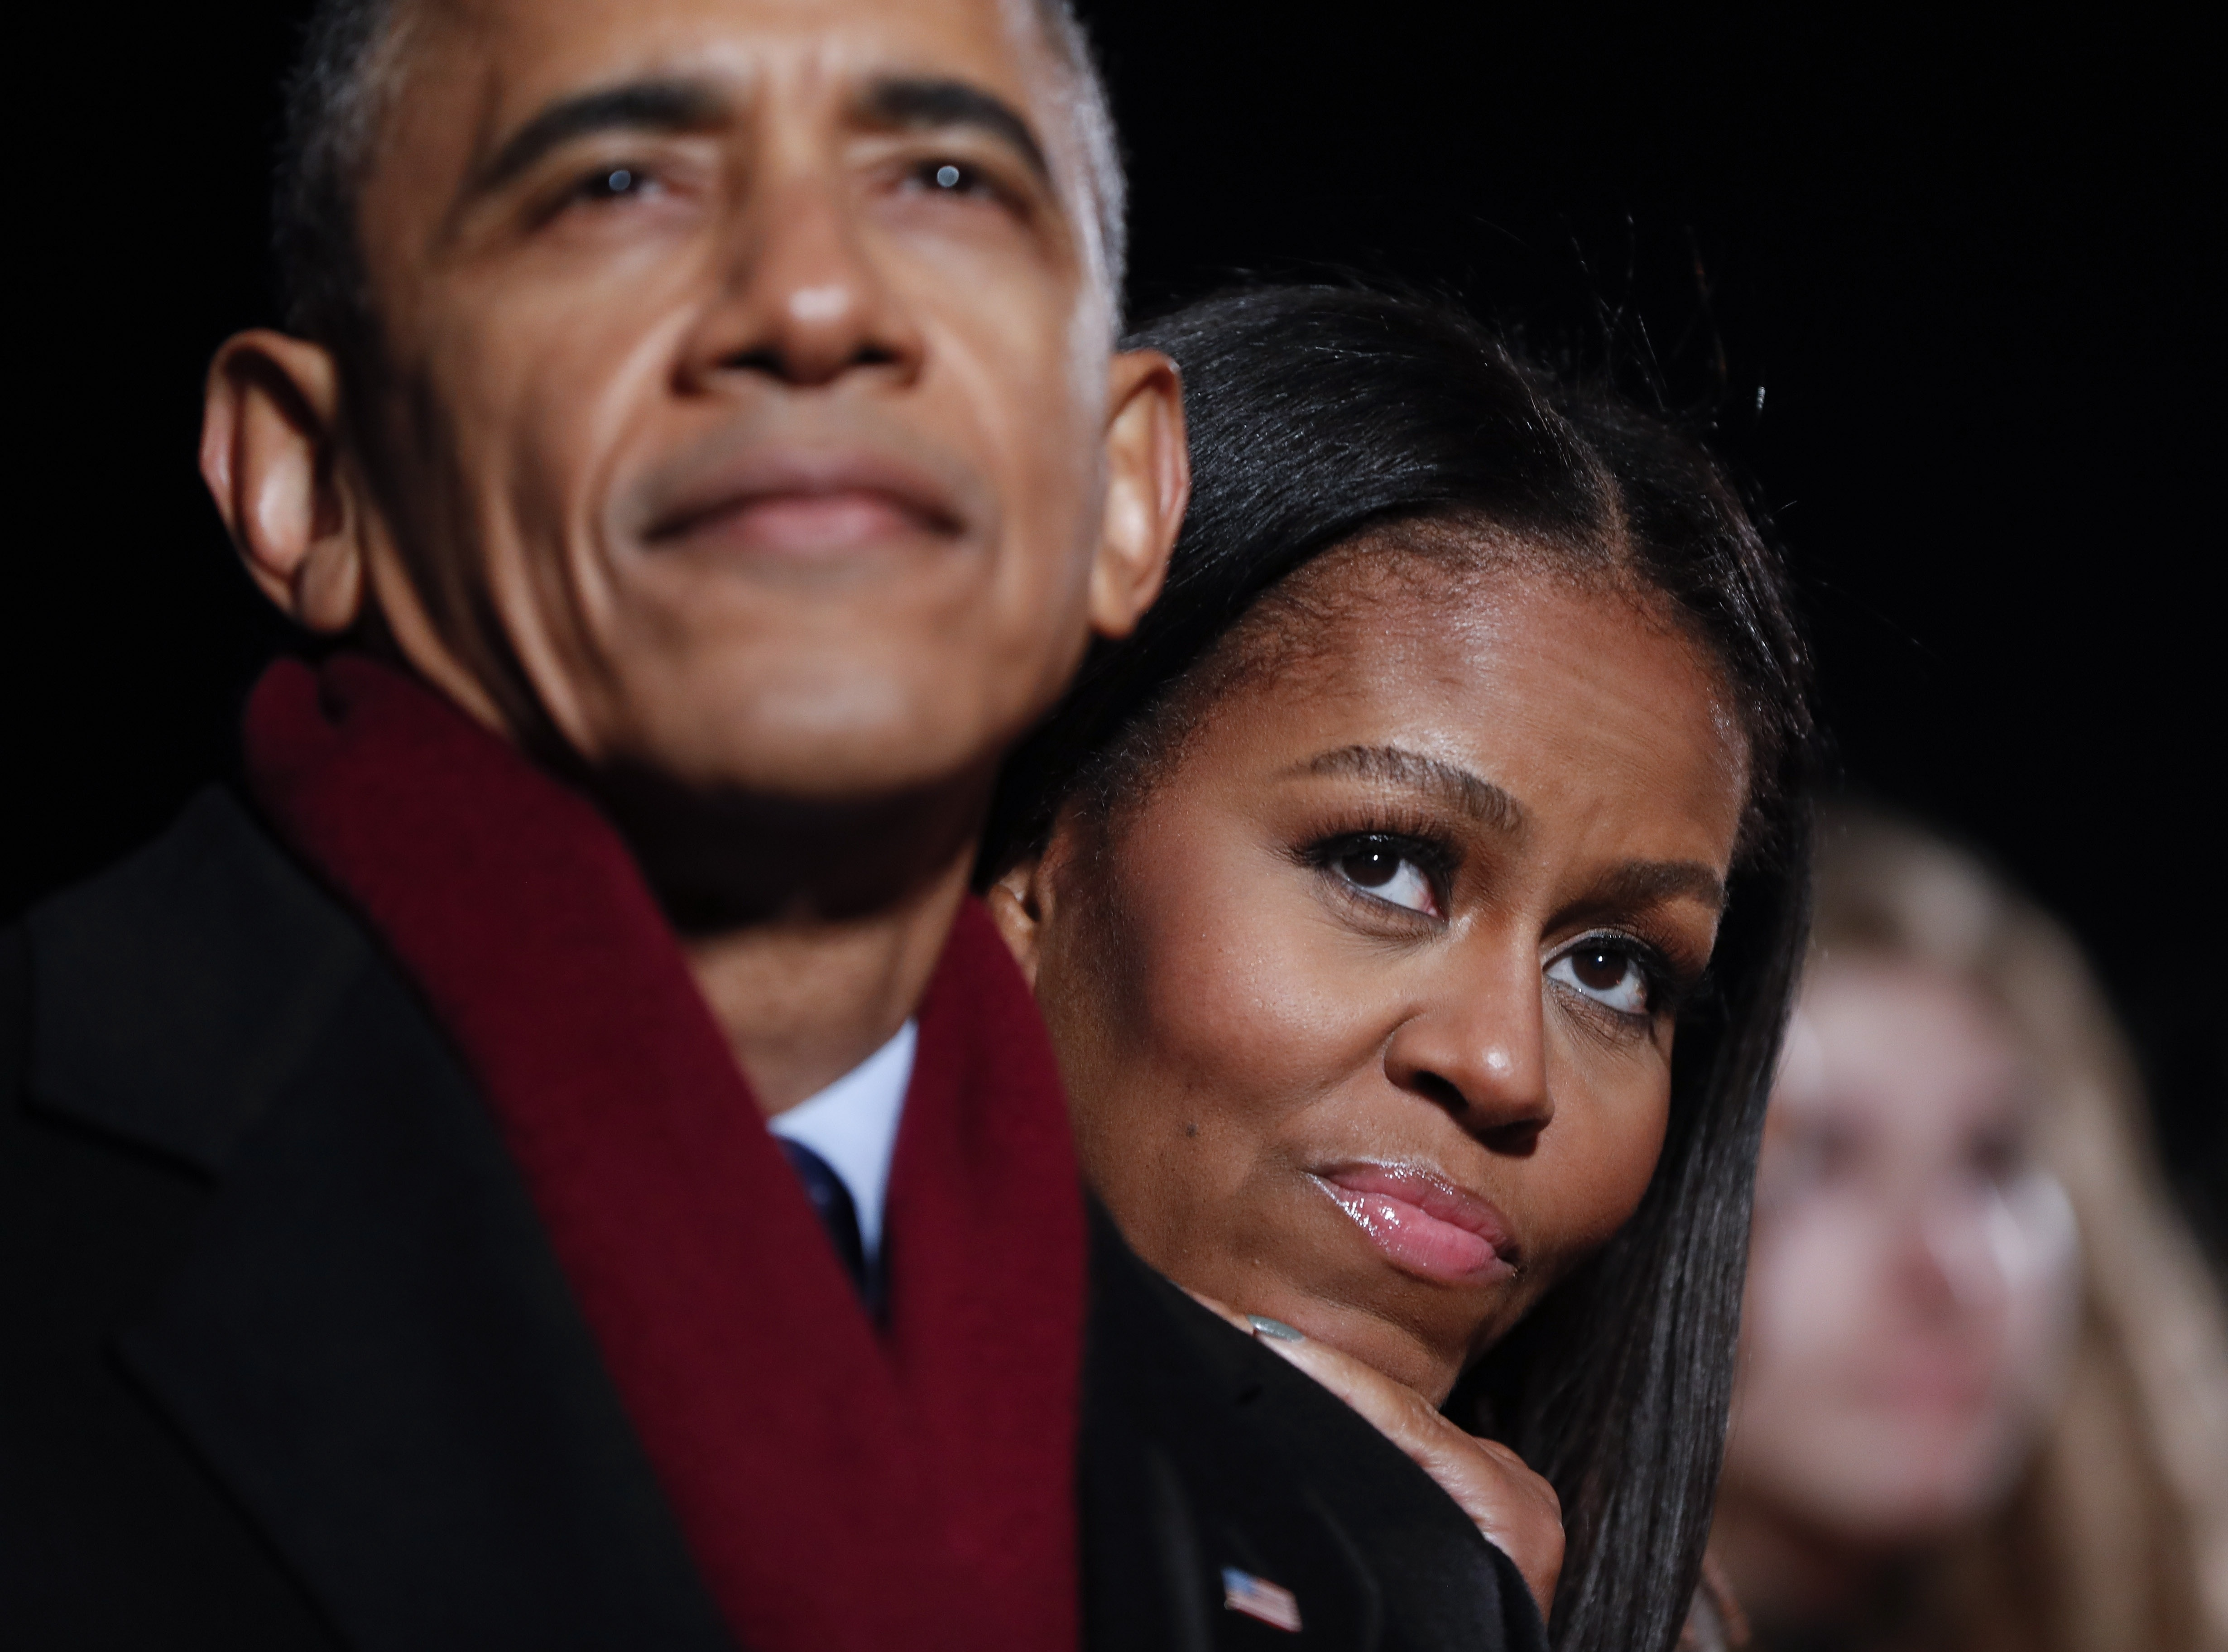 In this photo taken Dec. 1, first lady Michelle Obama and President Barack Obama watch the musical performances at the 2016 National Christmas Tree lighting ceremony at the Ellipse near the White House in Washington. What does Michelle Obama do next after leaving the White House? AP WIREPHOTO